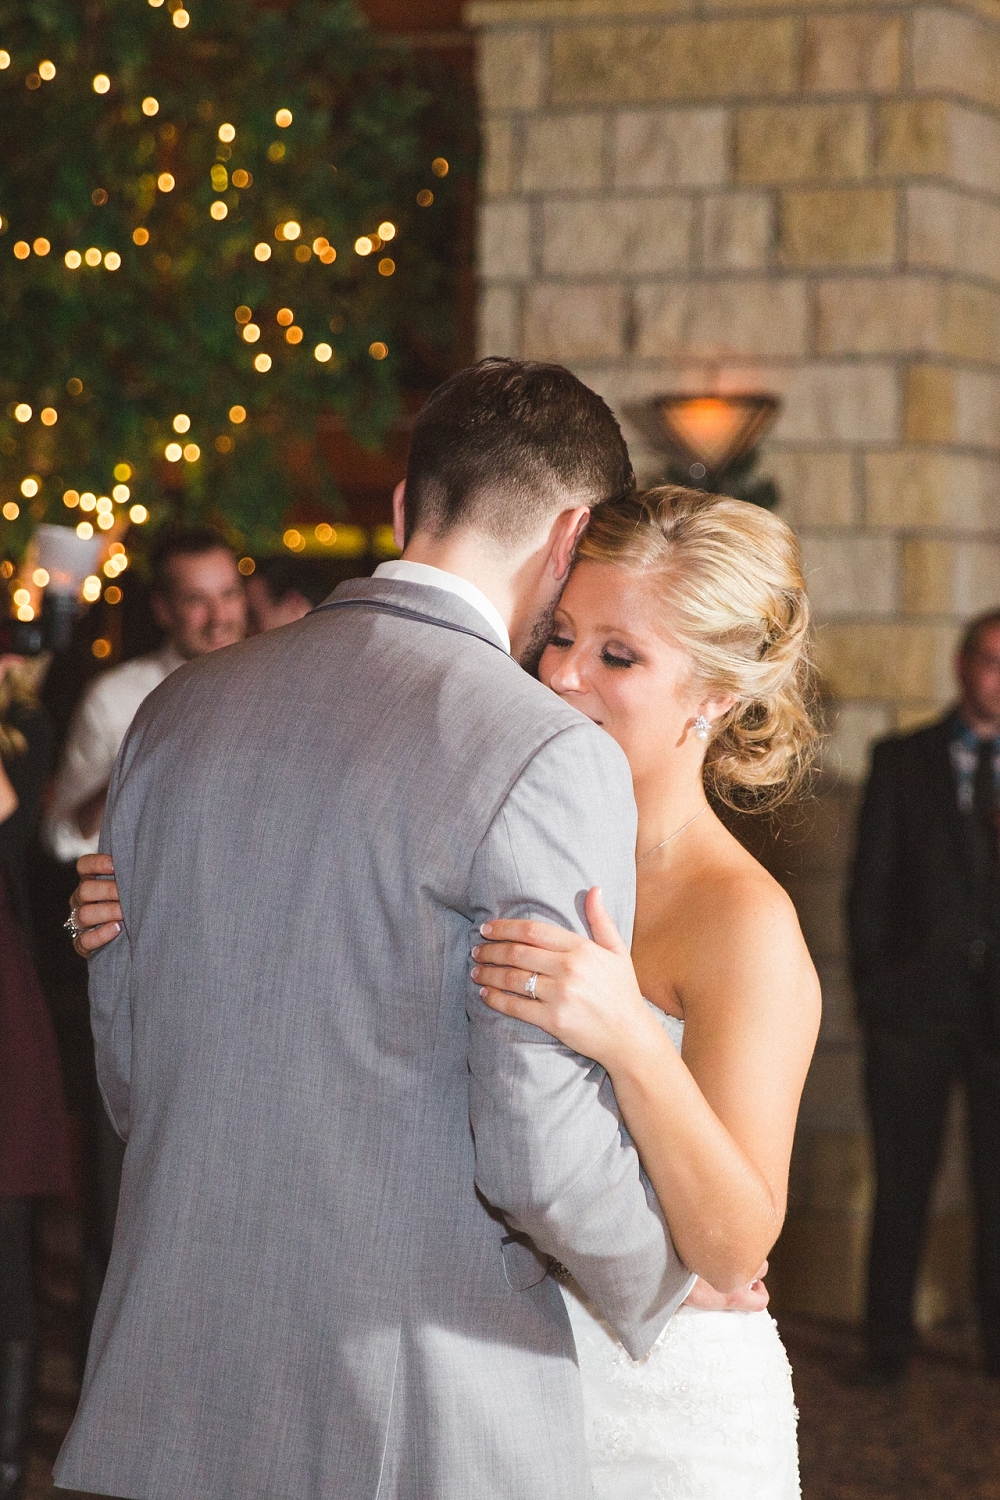 Rochelle Louise Photography, Minneapolis wedding photographer, Minnesota wedding